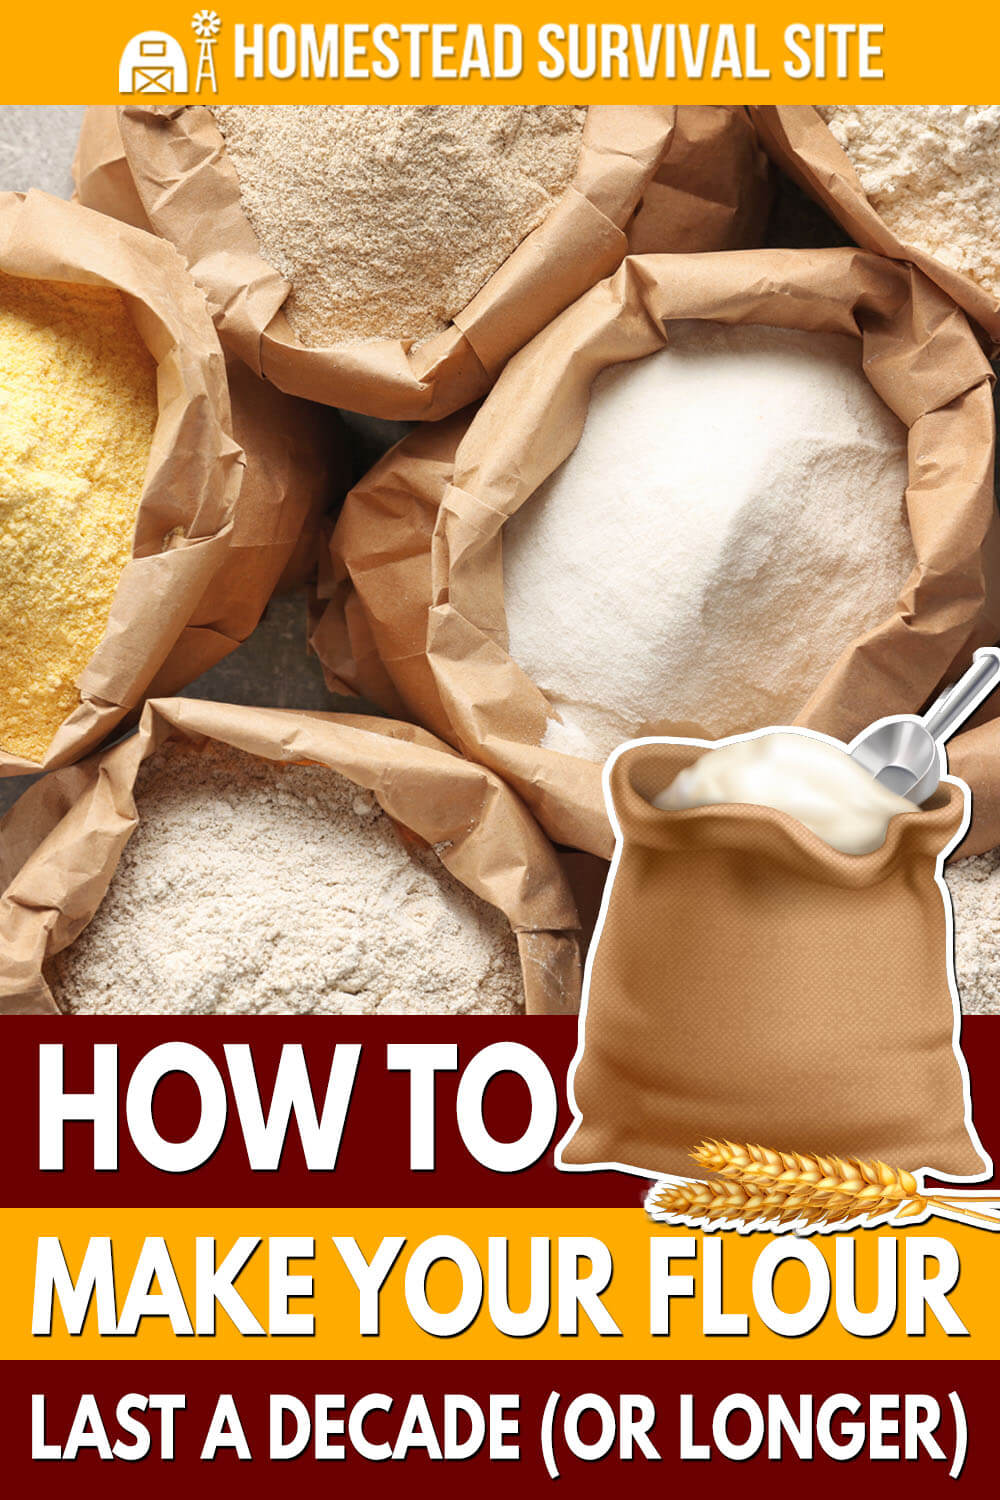 How to Make Your Flour Last a Decade (or Longer)